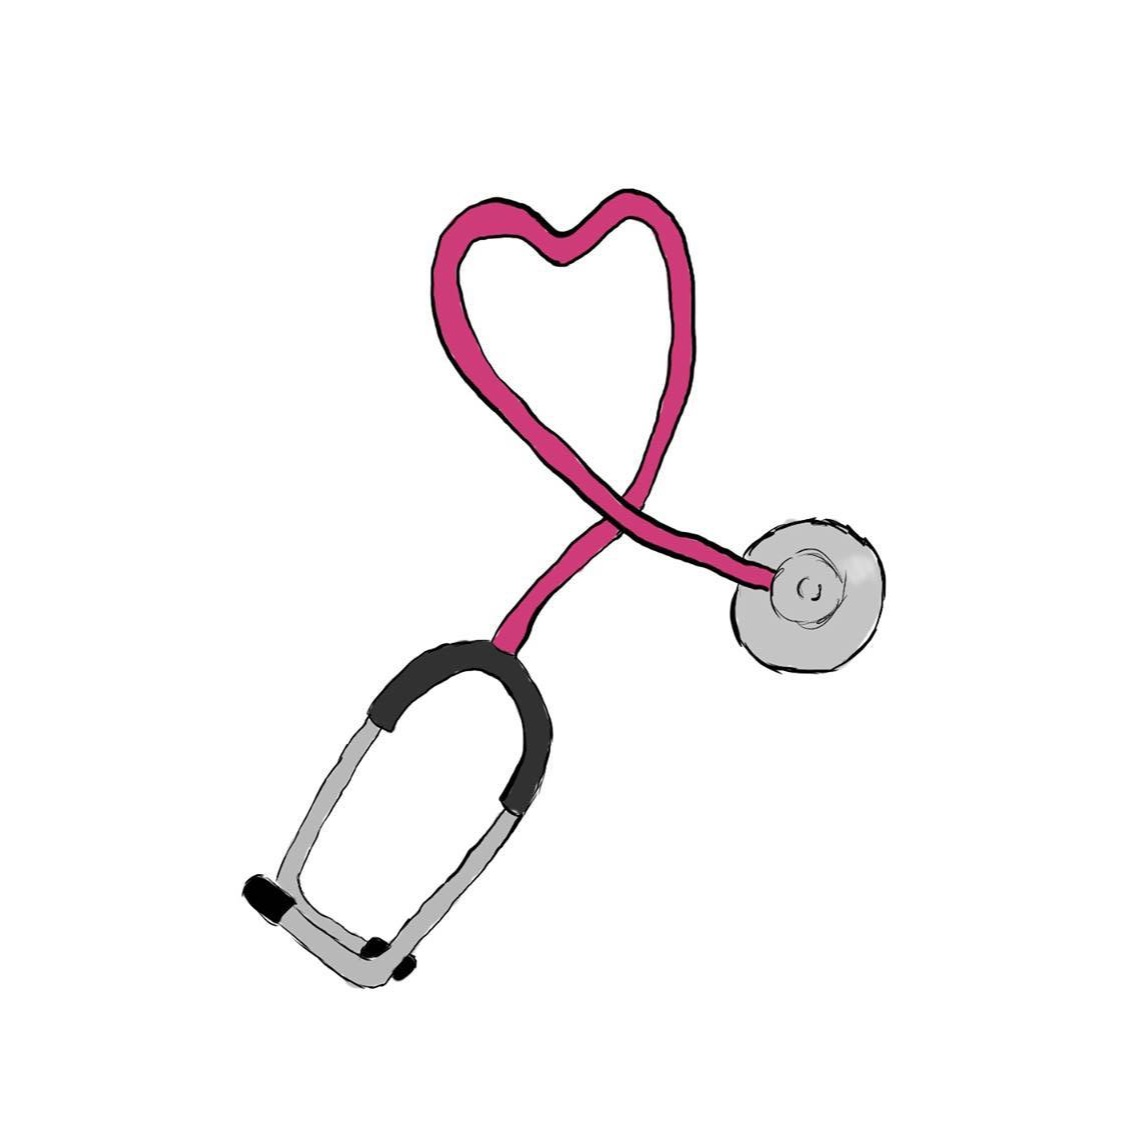 Cardiology - Have questions about your heart? Check out these videos!